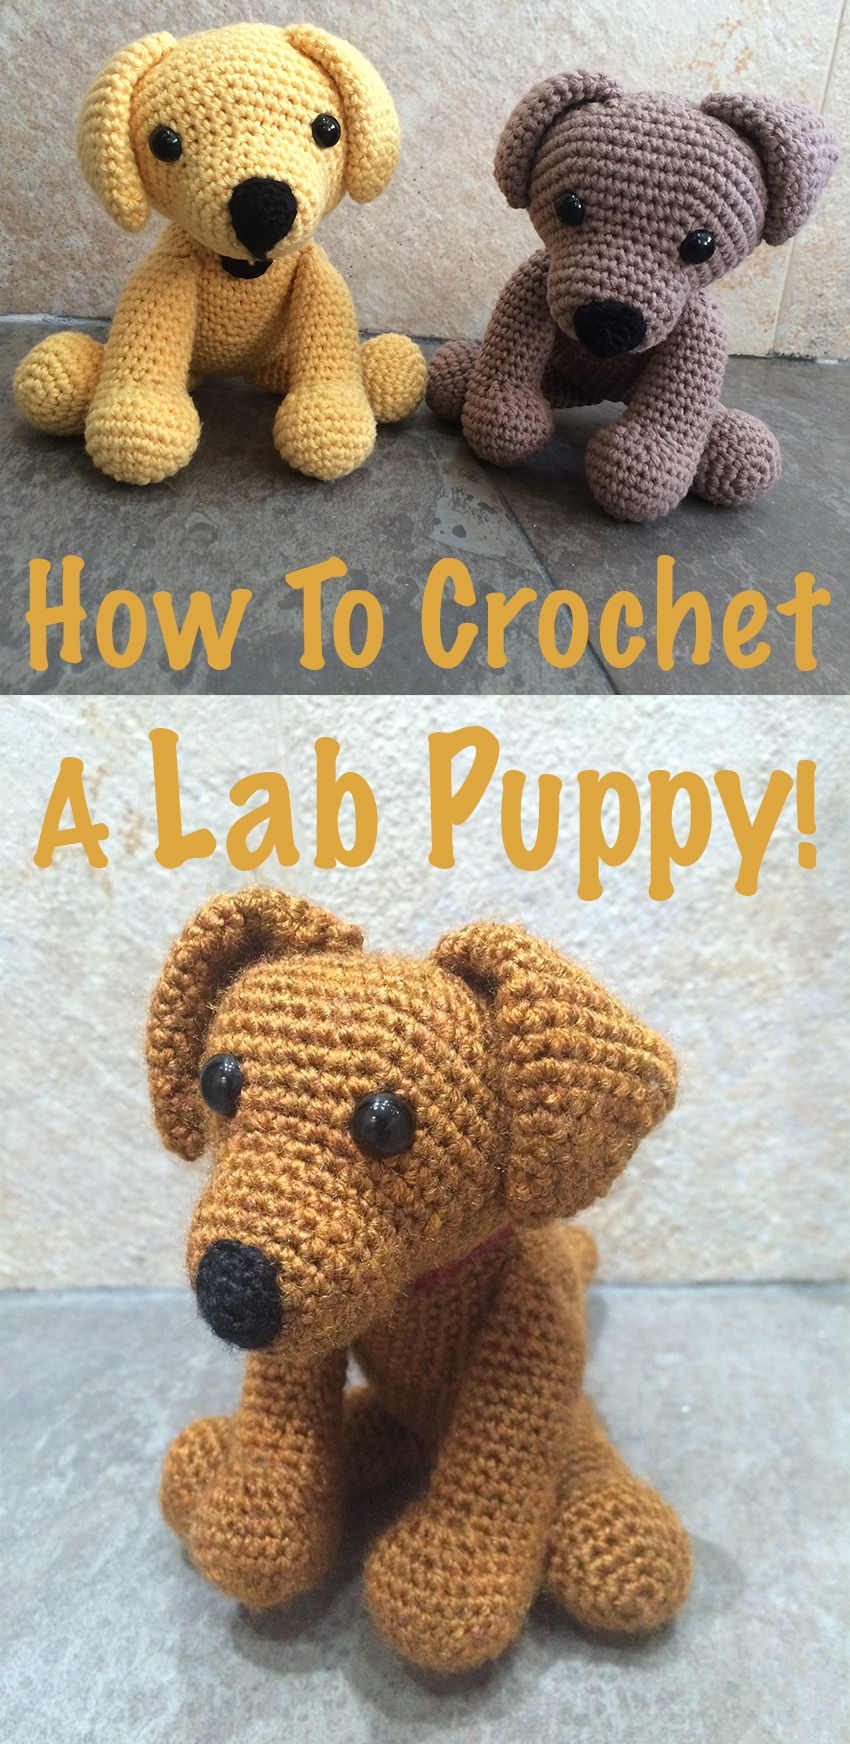 Crochet Labrador: How To Make Your Own Toy Dog | Patrones amigurumi ...